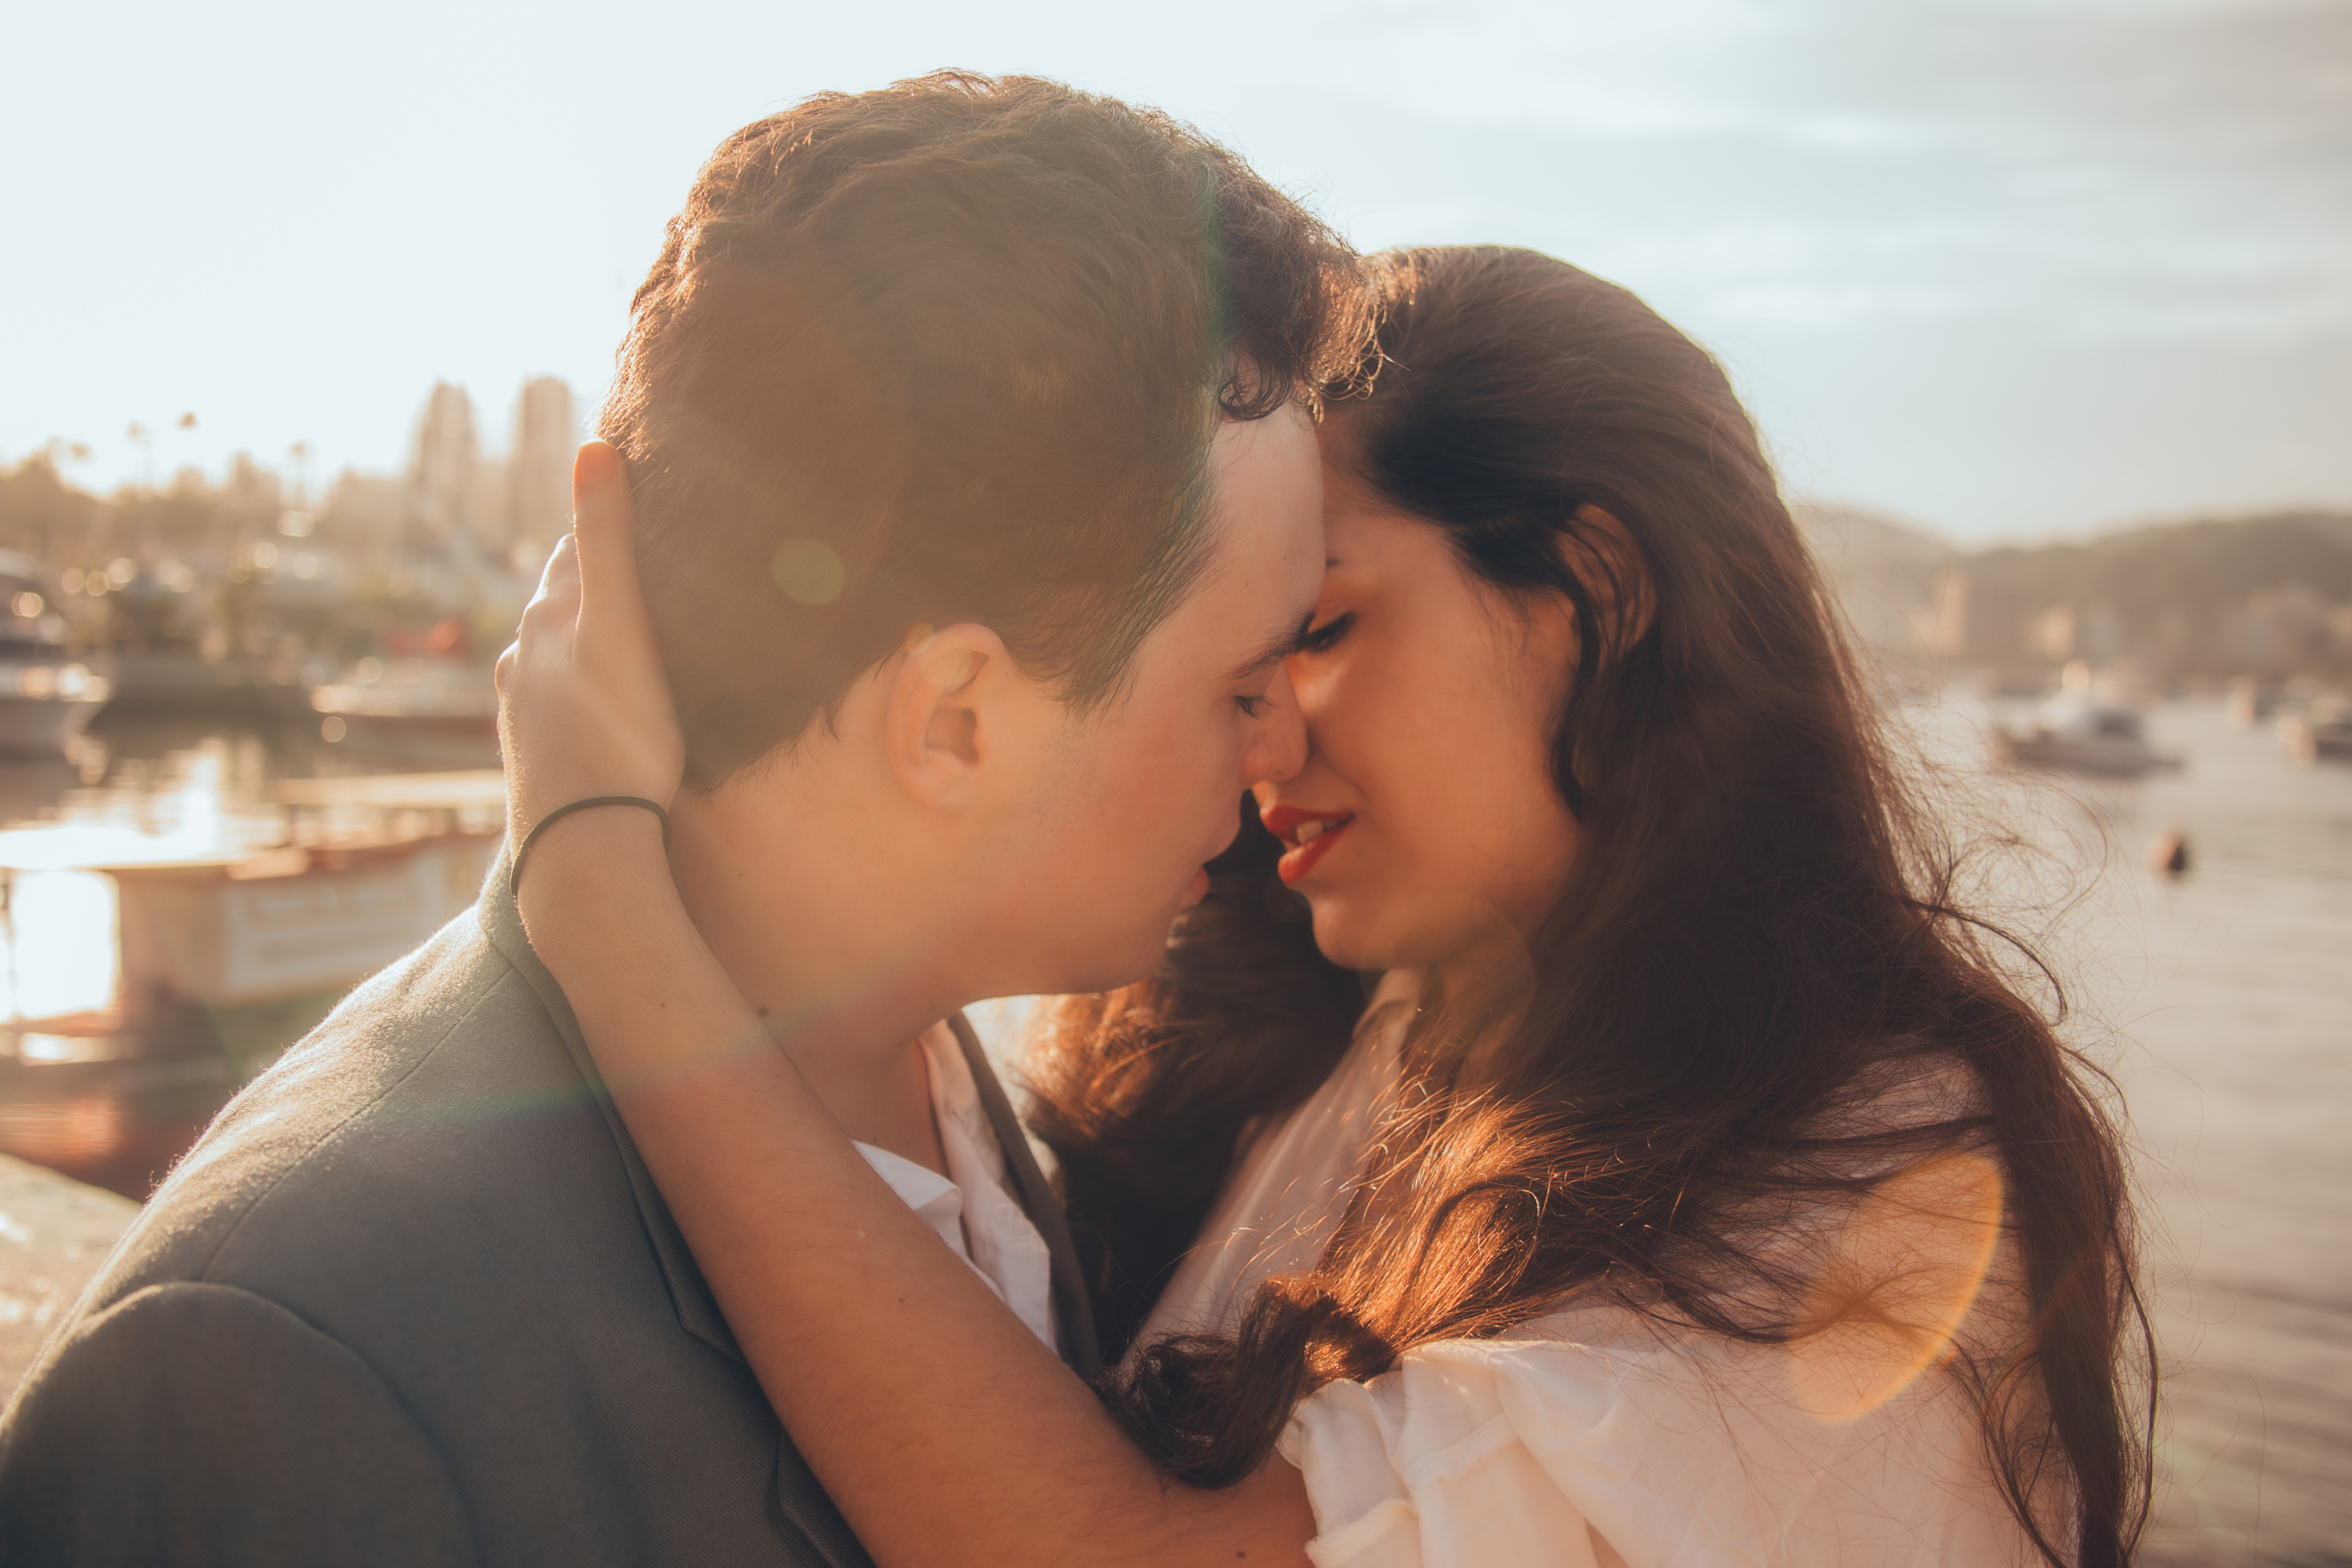 Real Love spells that work can make you kiss your crush